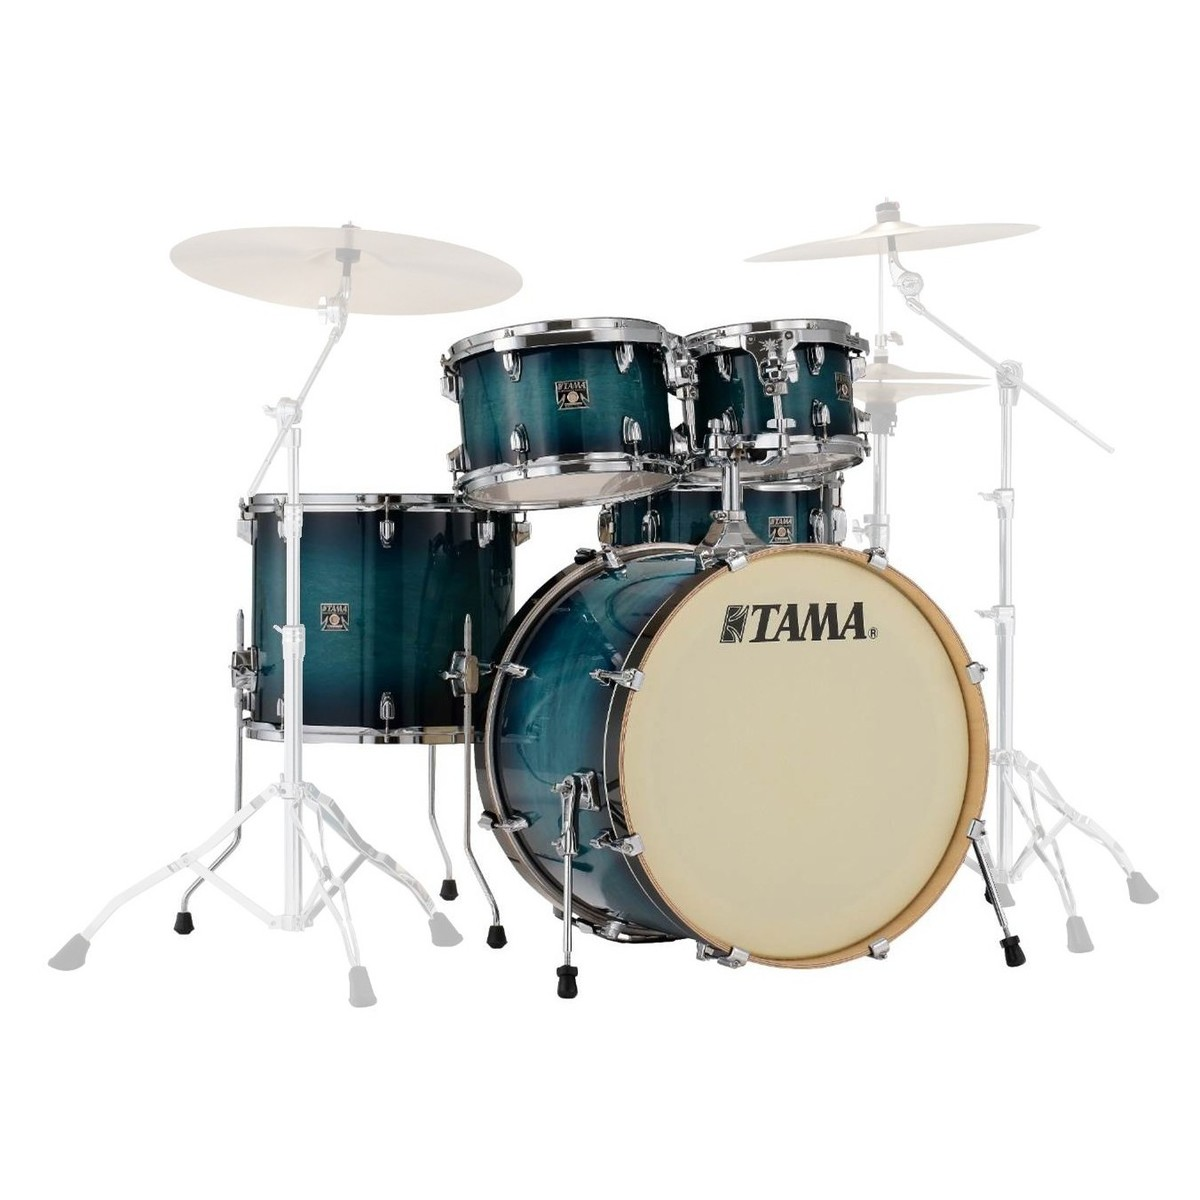 Tama superstar classic 22 39 39 5pc shell pack blue lacquer for Classic house drums